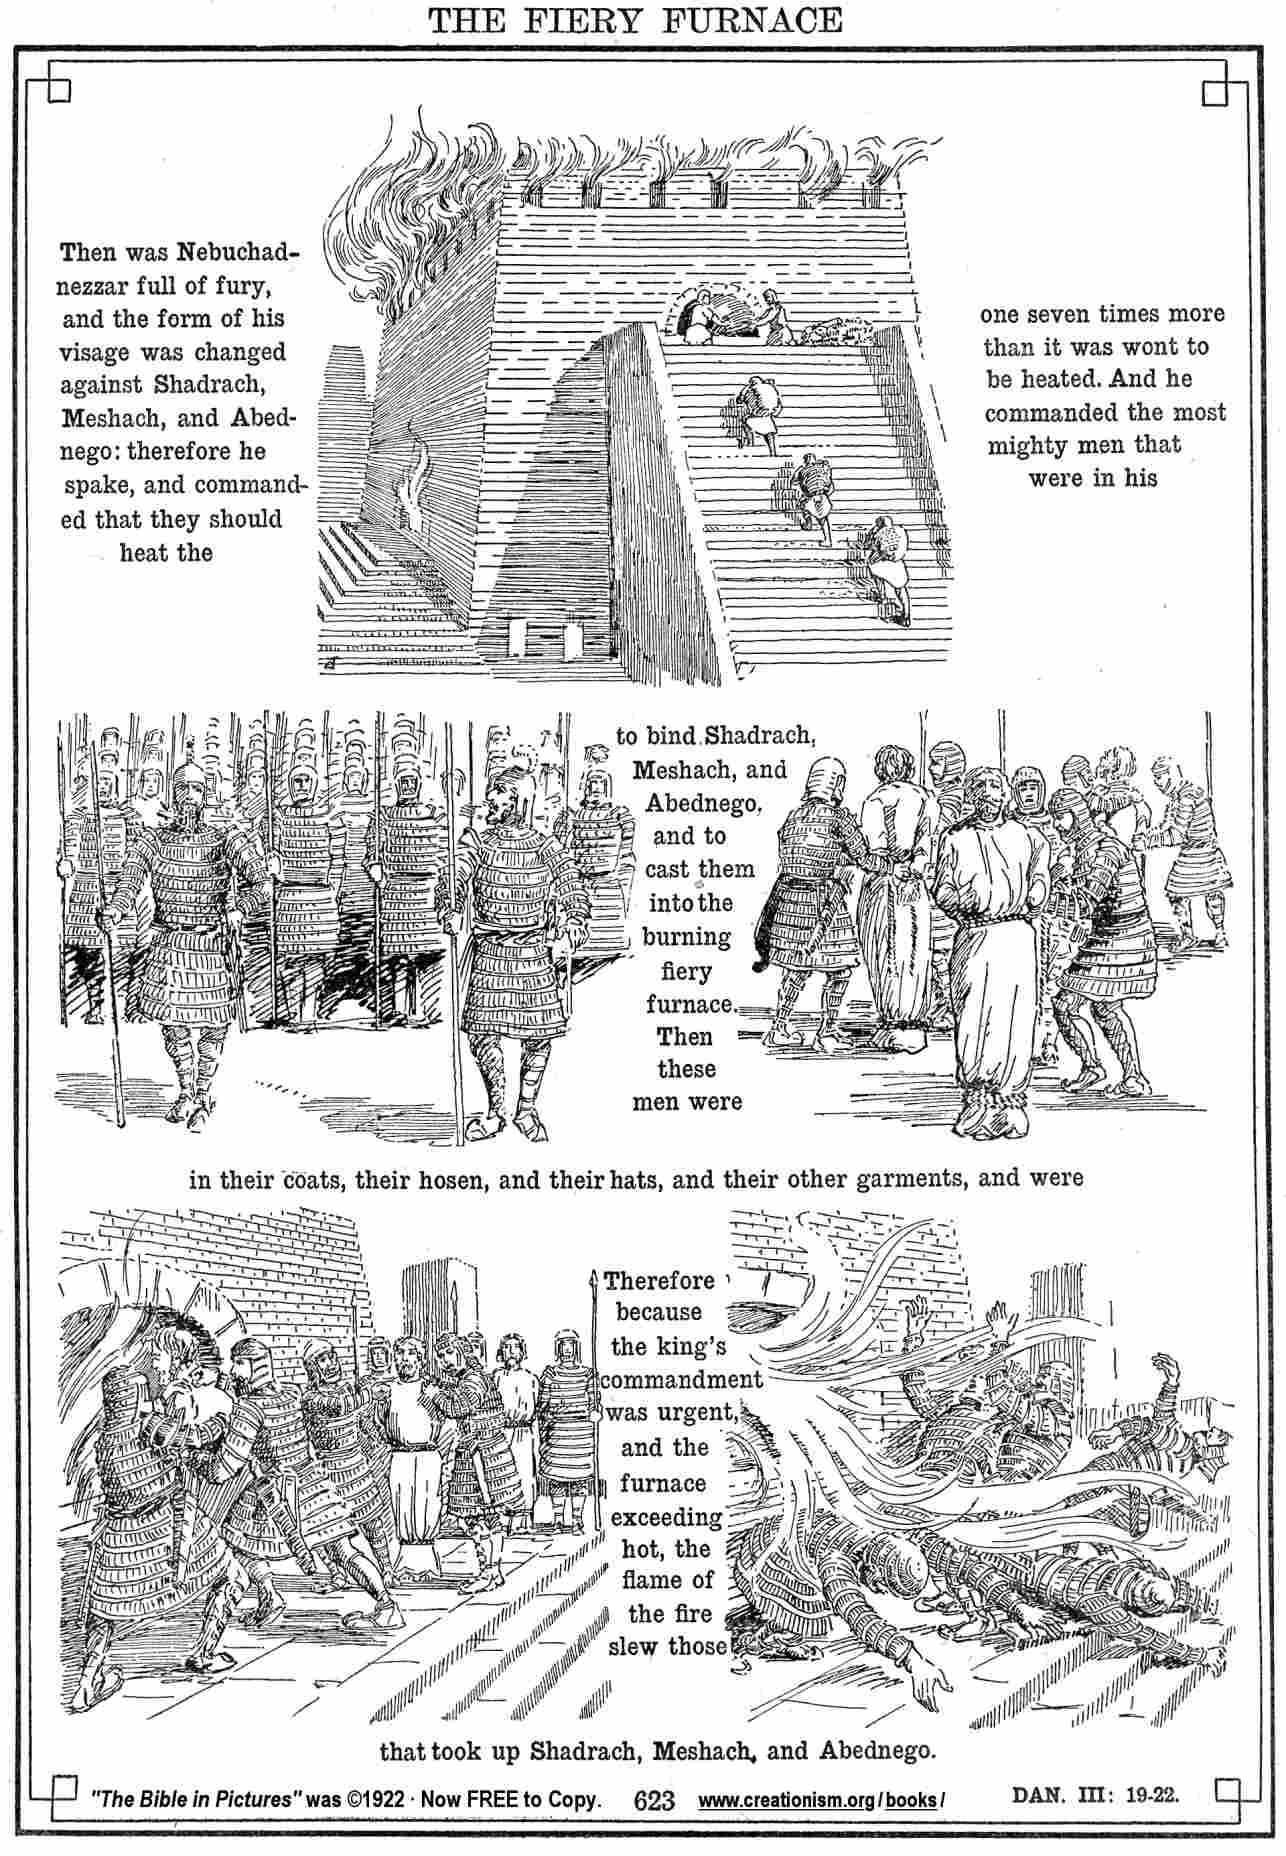 shadrach meshach and abednego coloring page - Bible27Dan03 19 22